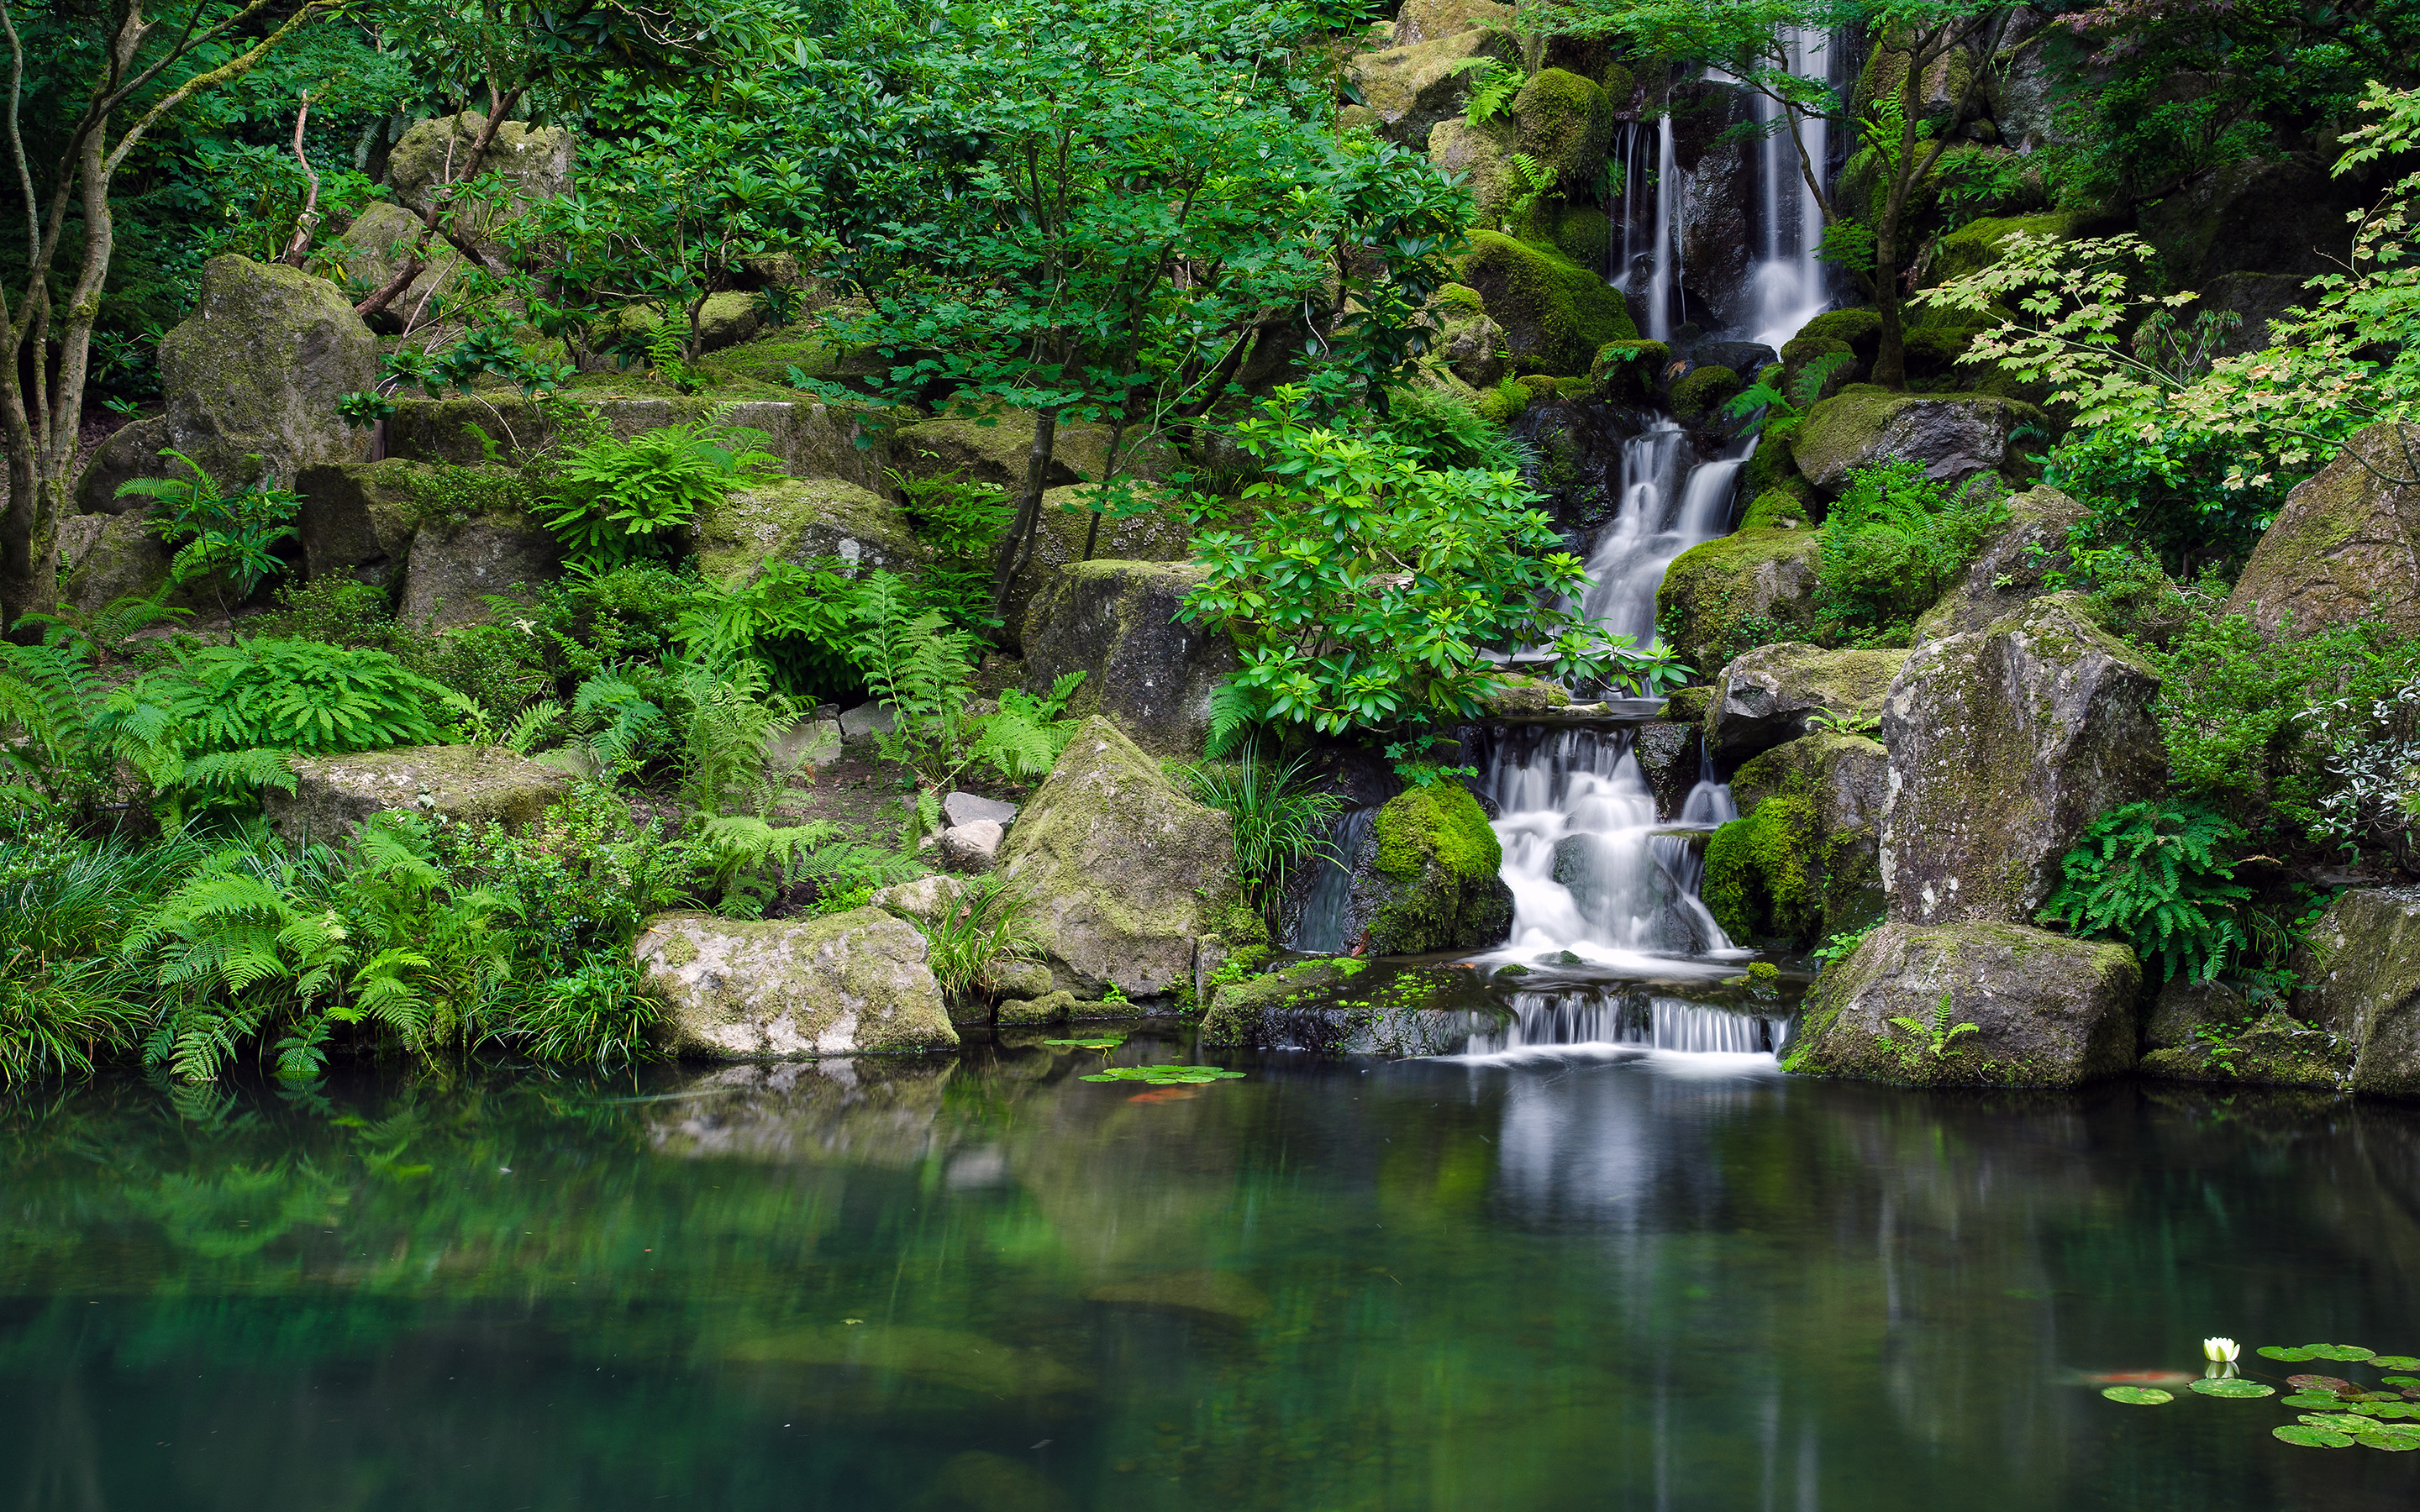 2880x1800 Waterfall Jungle Forest Pond trees reflection wallpaper |  | 45592  | WallpaperUP